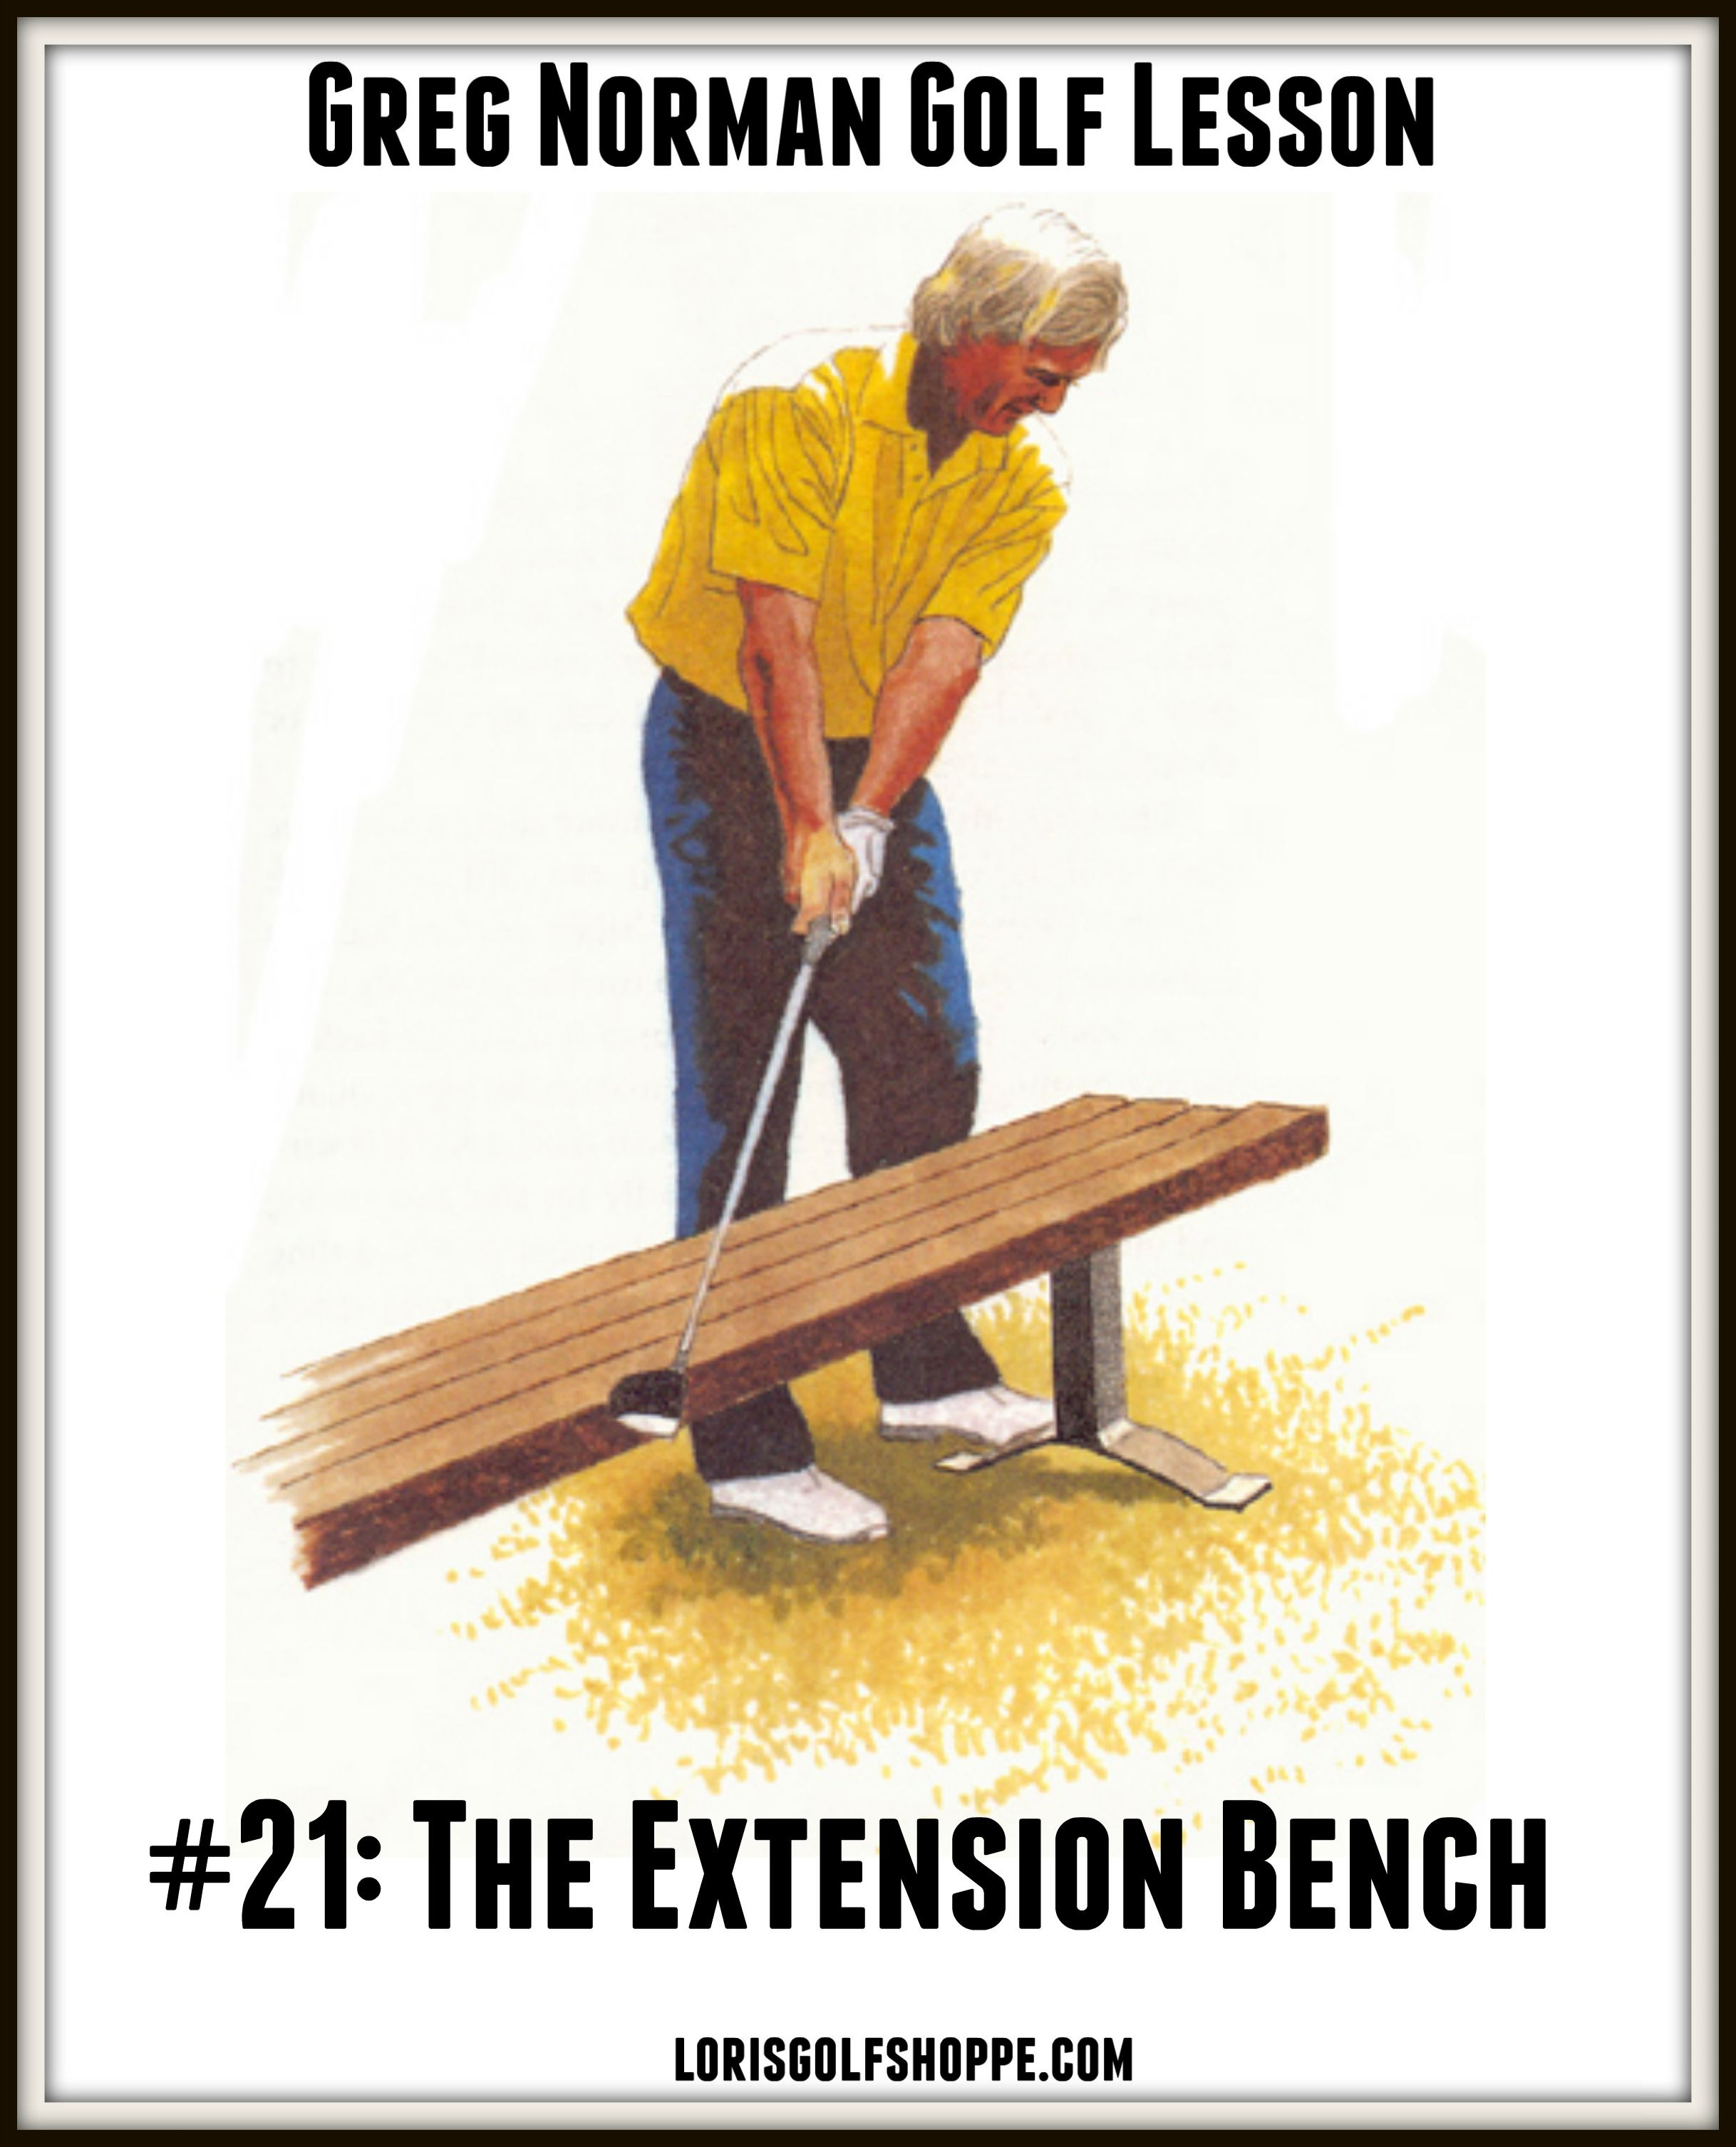 The Extension Position A Point Halfway Through The Backswing Where The Club Extends Directly Away From Your Target Greg Norman Golf Golf Lessons Golf Tips